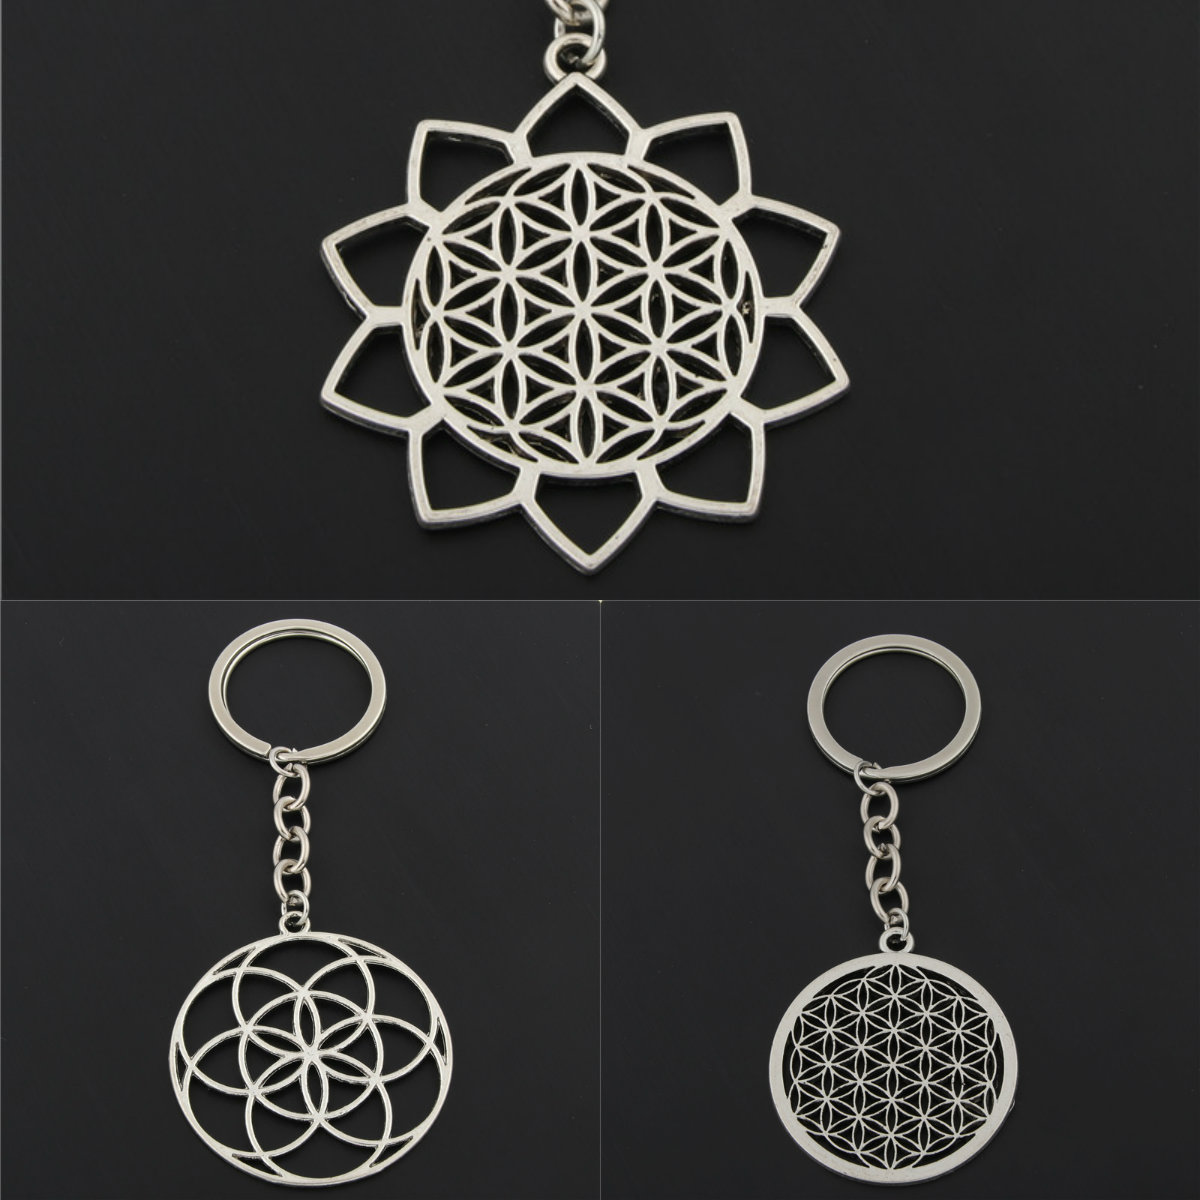 1pc Seed Of Life Charms Flower Of Life Keychains For Women Bag Charms Geometric Charms With Chain DIY Jewelry